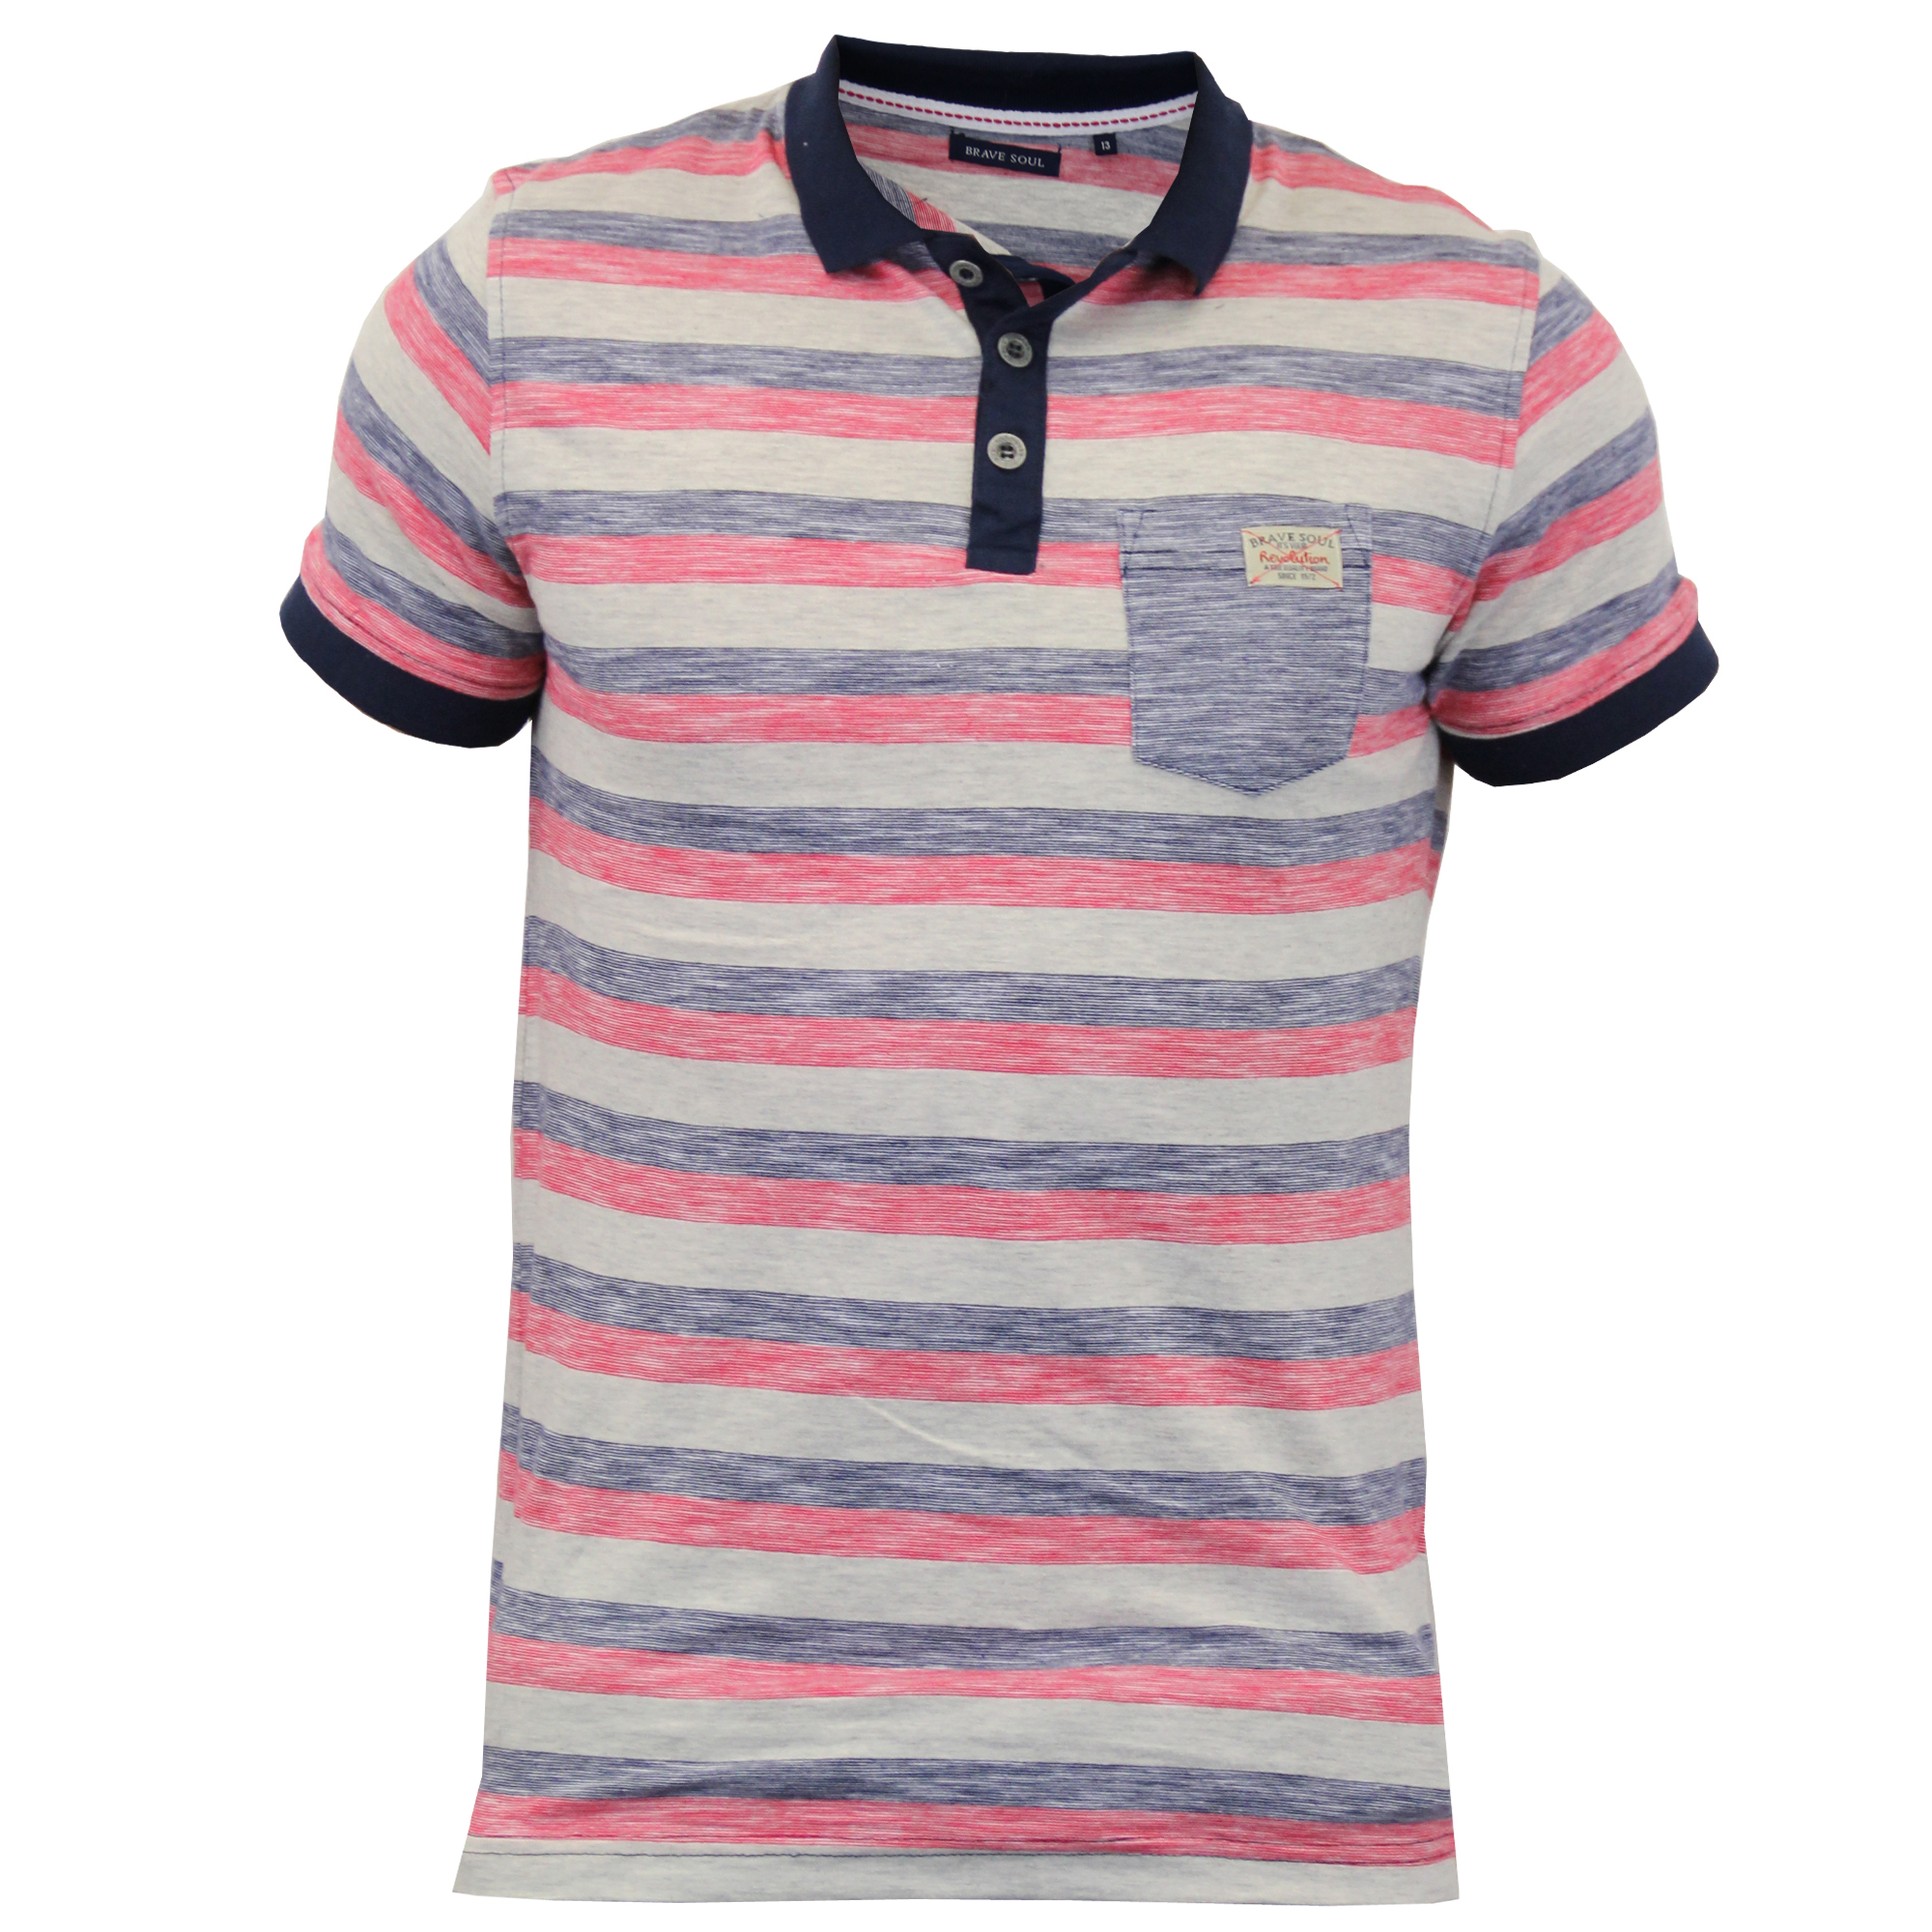 Boys kids short sleeved striped polo shirts by brave soul for Boys striped polo shirts